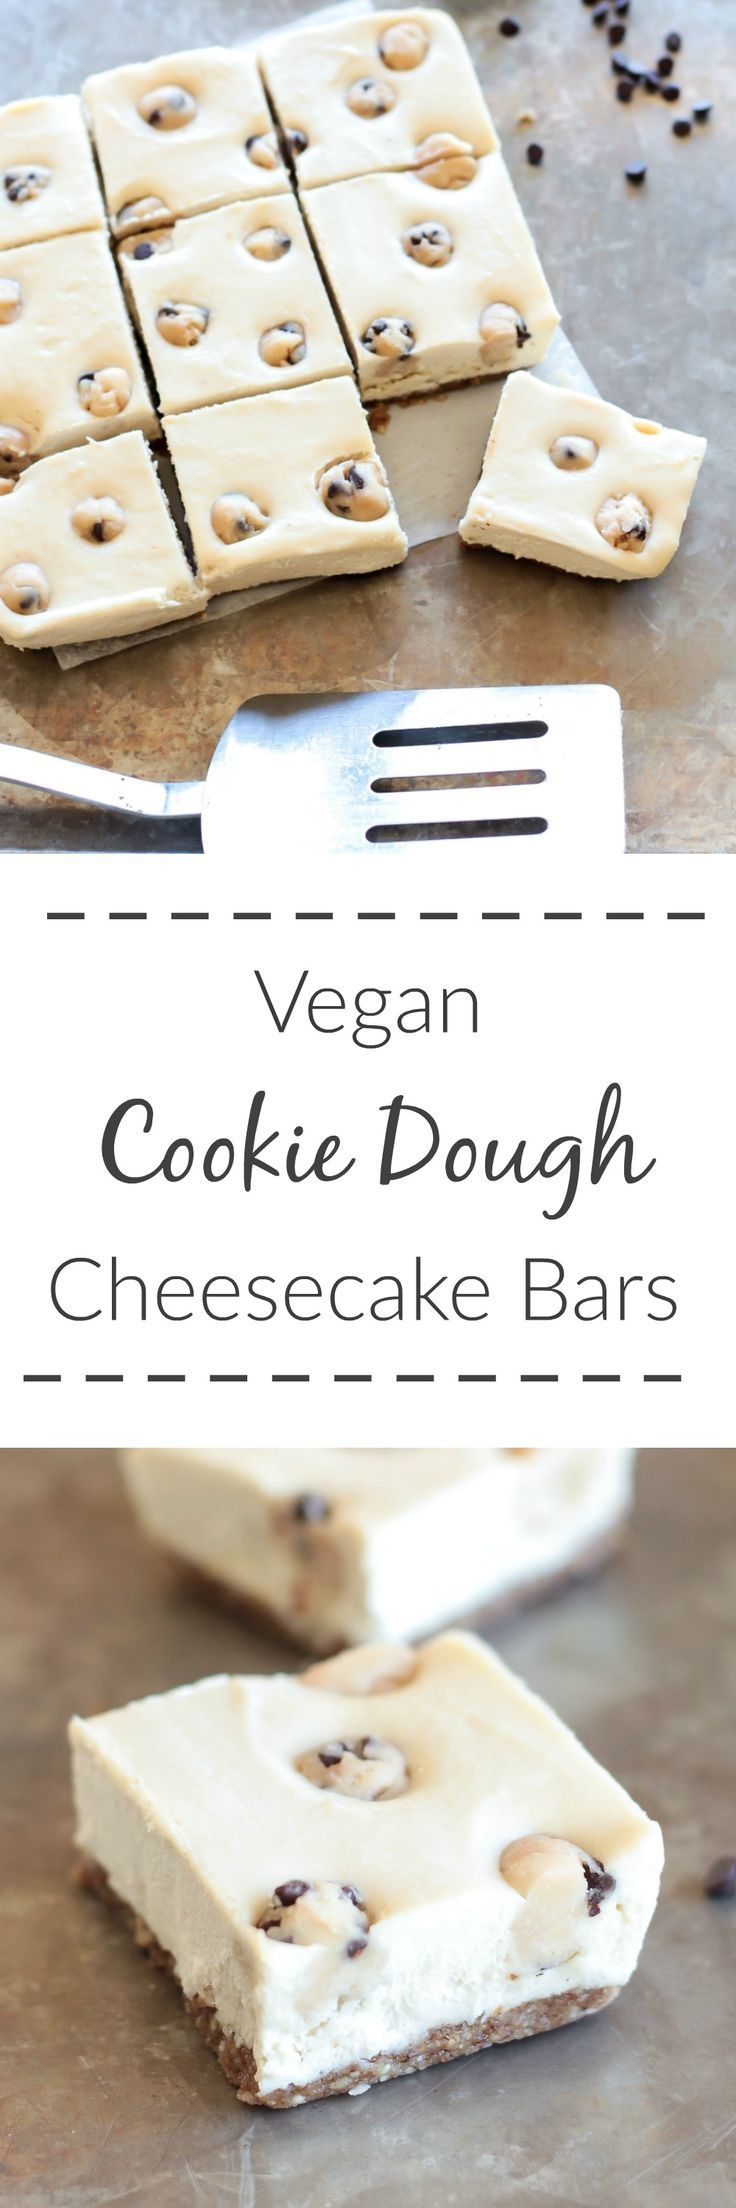 Vegan Cookie Dough Cheesecake Bars have a silky smooth cheesecake filling…